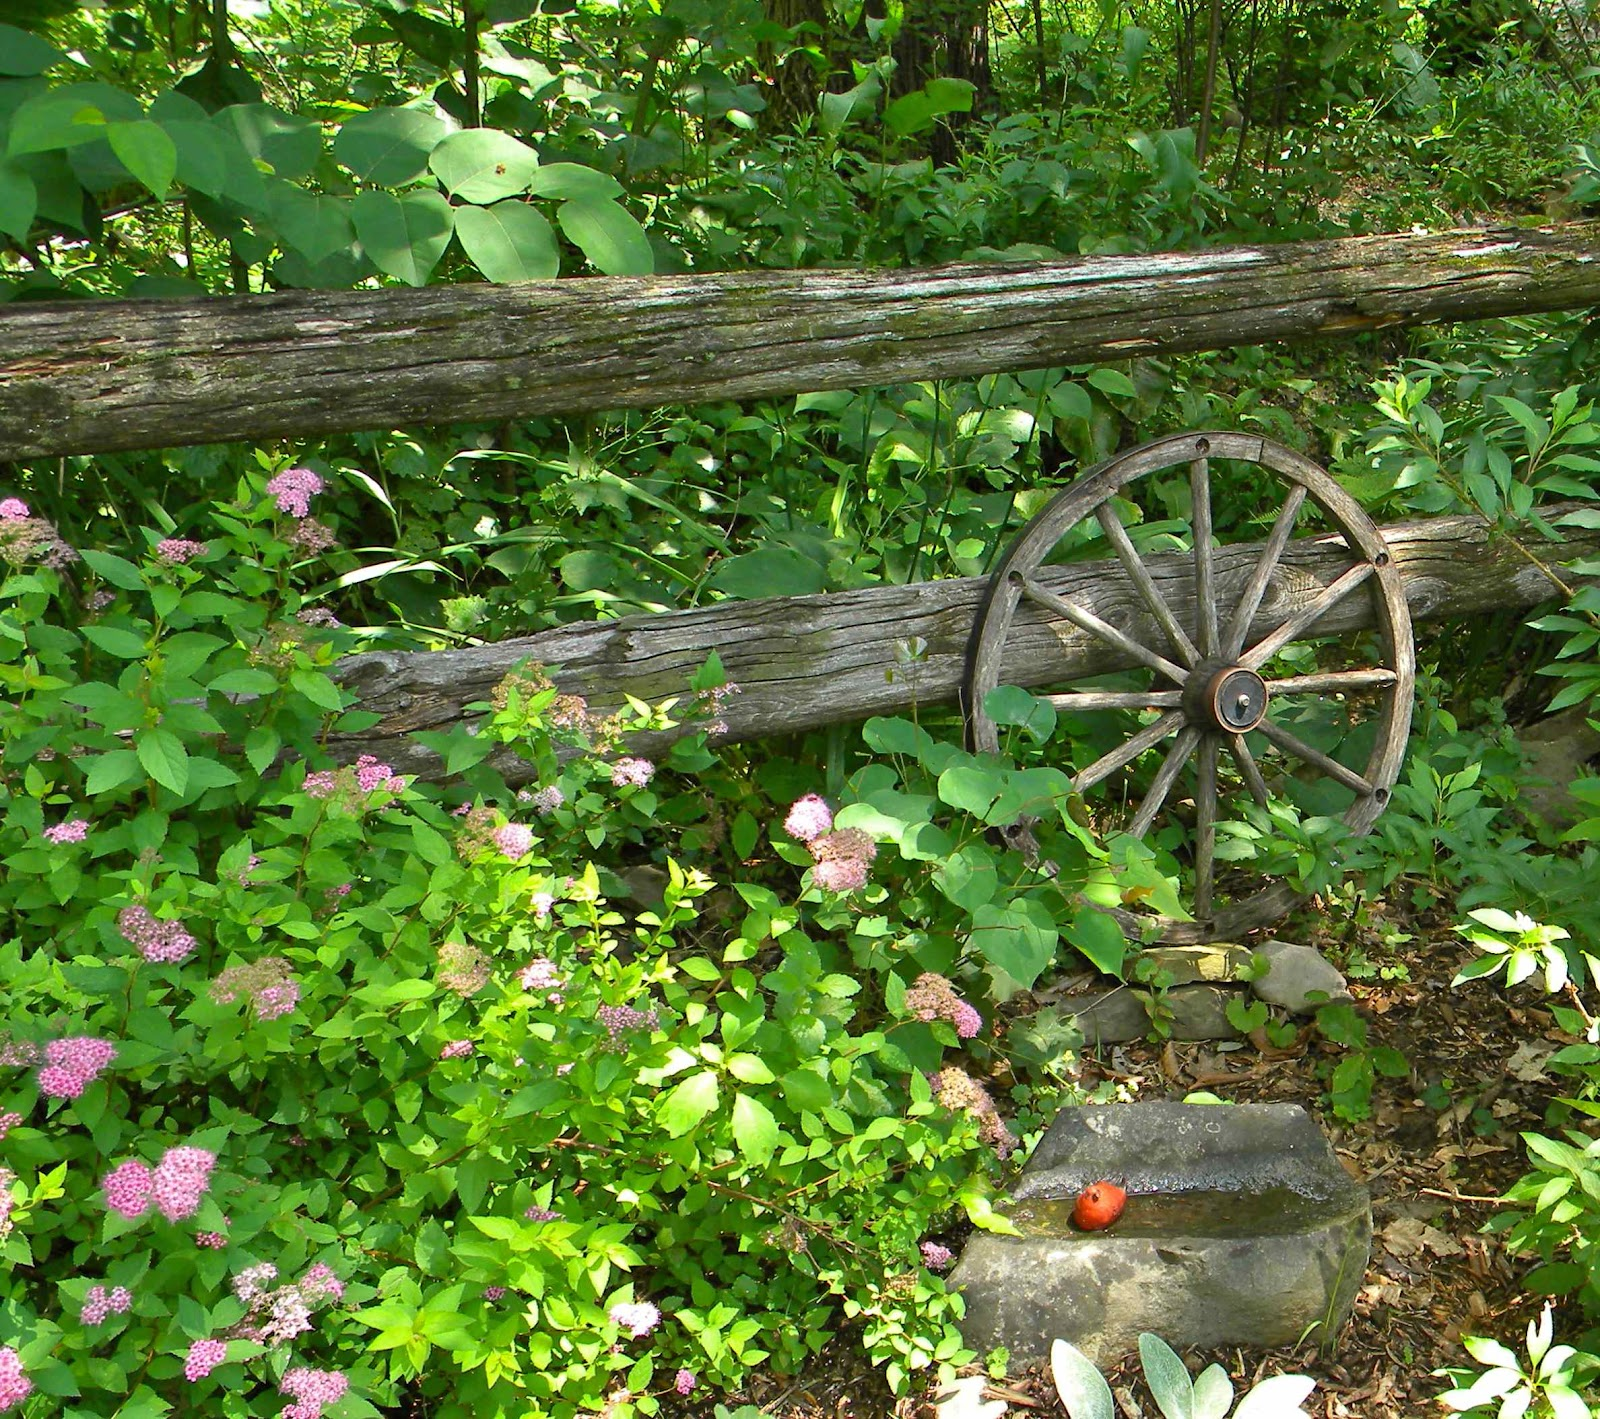 Near The Entrance The Gardener Had Placed A Wagonwheel Against A Rustic  Fence, With A Rock For A Birdbath. A Spirea Was Coming Into Bloom To  Complete The ...